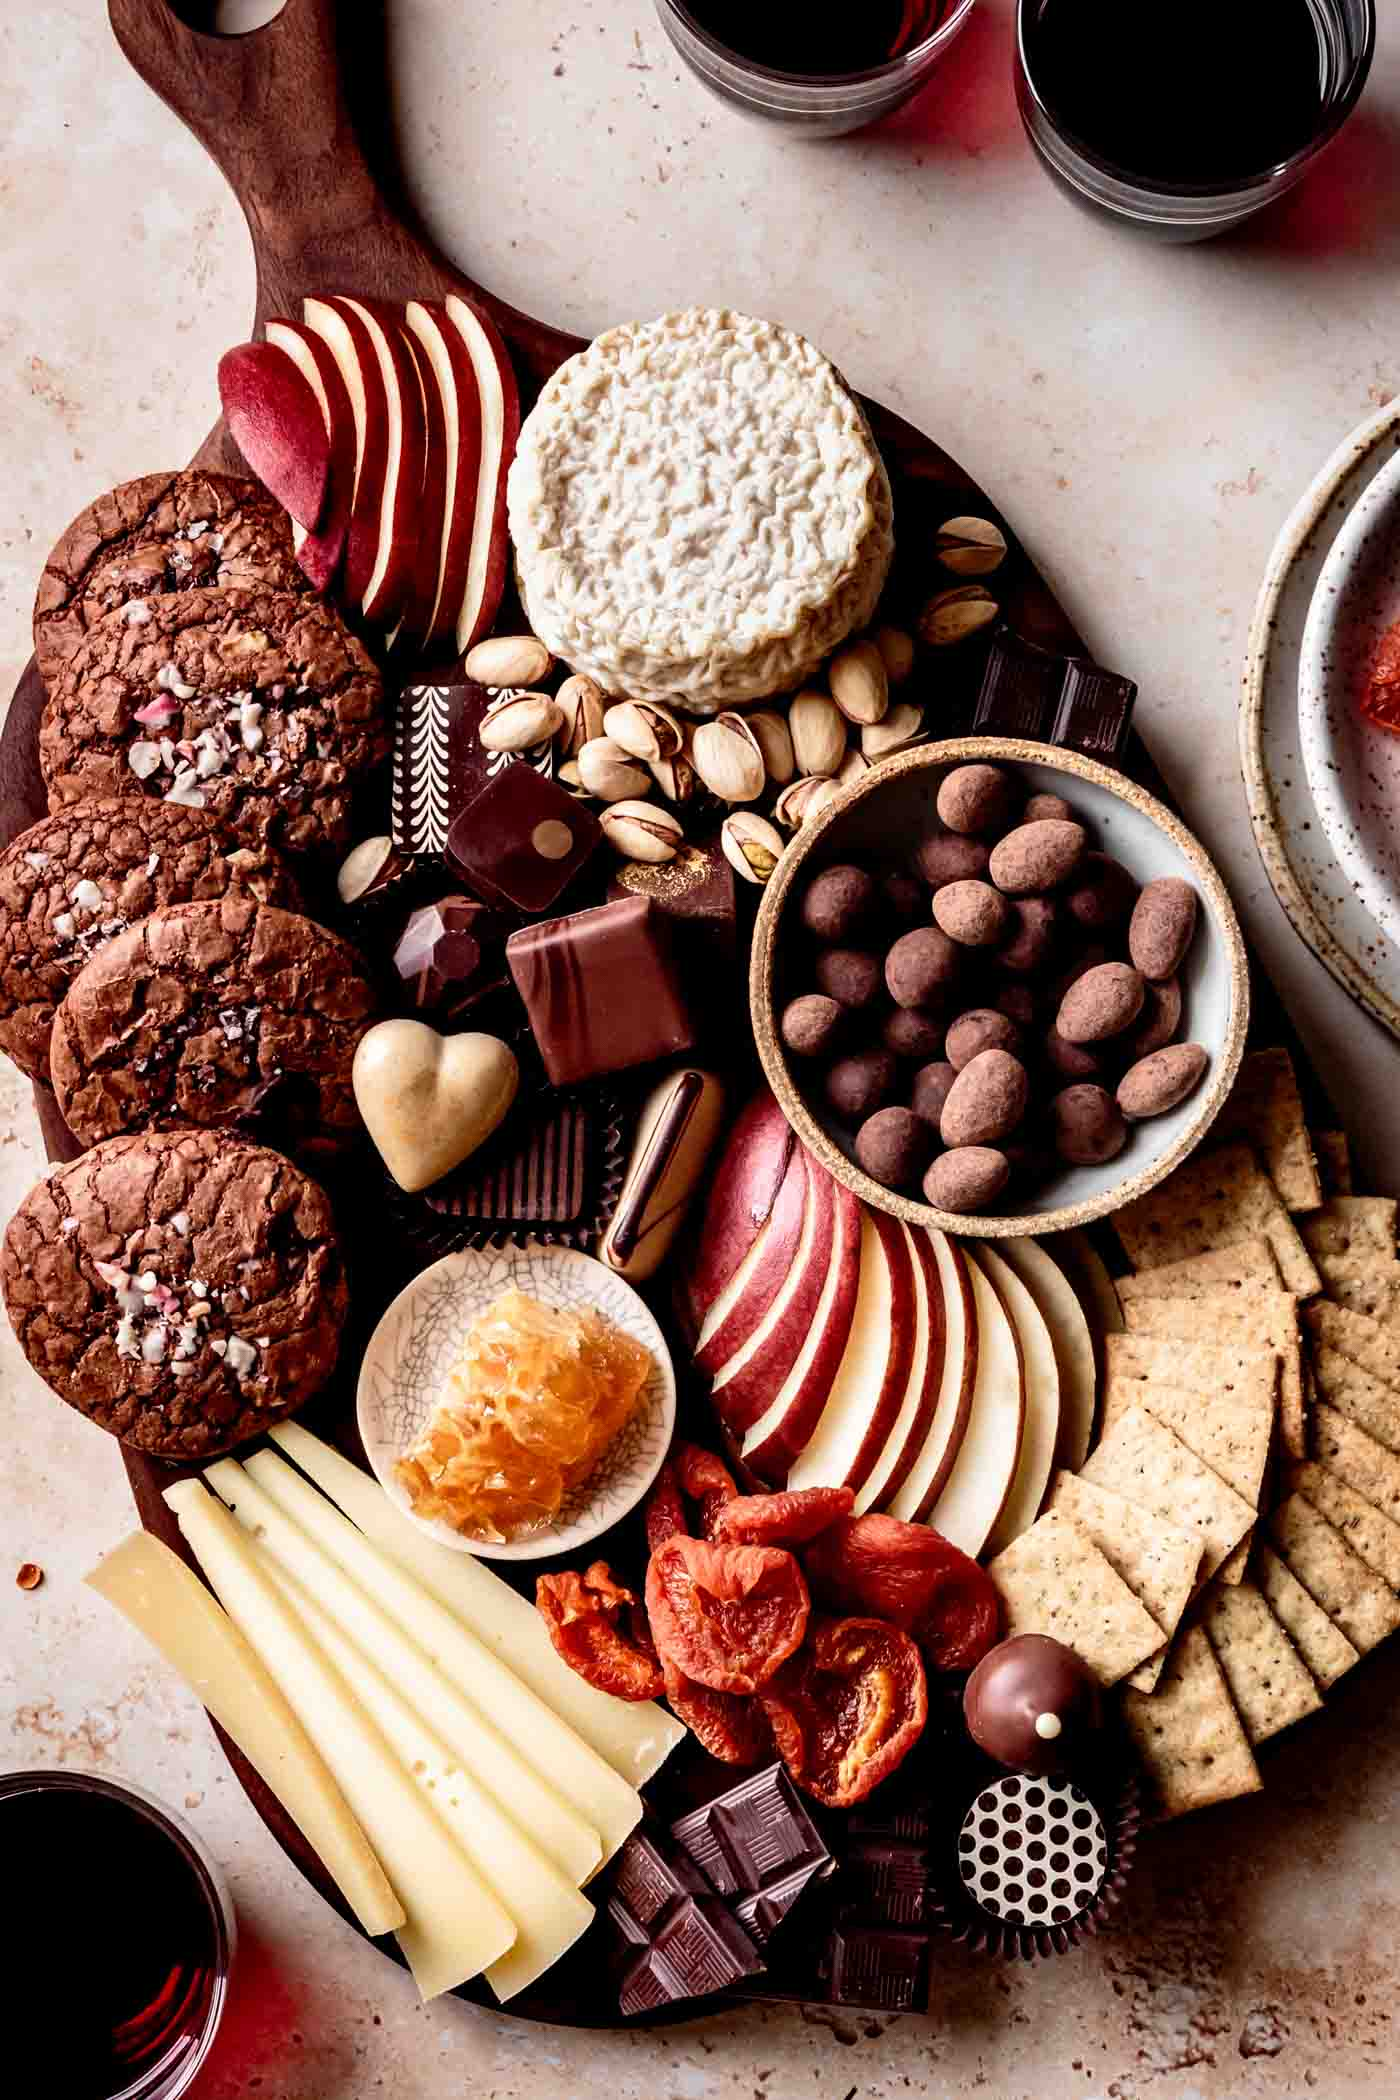 Cheese and chocolate board overhead with red wine in glasses on sandstone surface